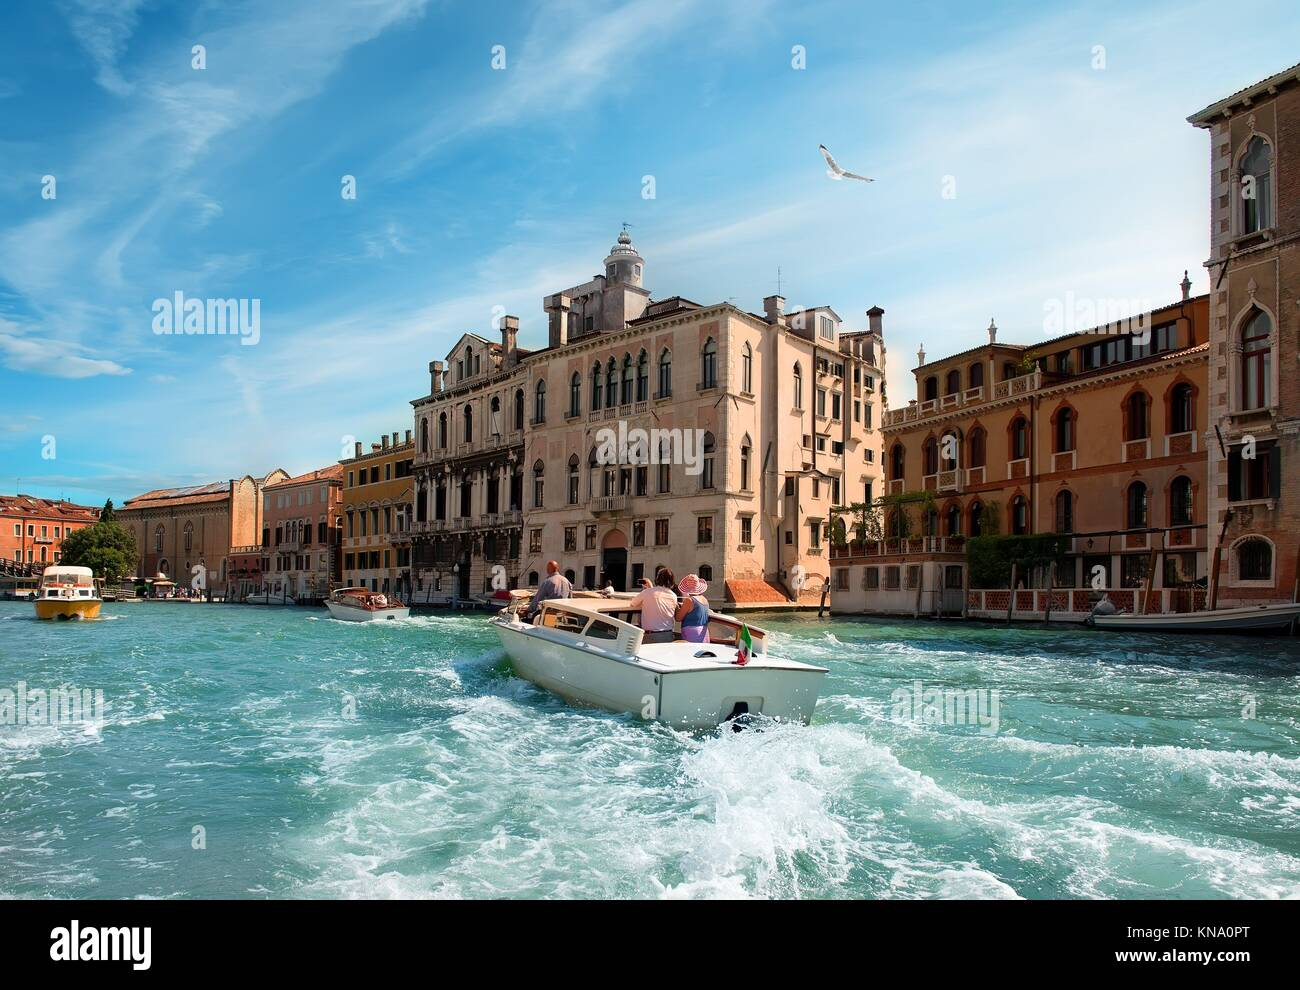 Warm summer day in romantic Venice, Italy. View from the bridge of Academia. - Stock Image